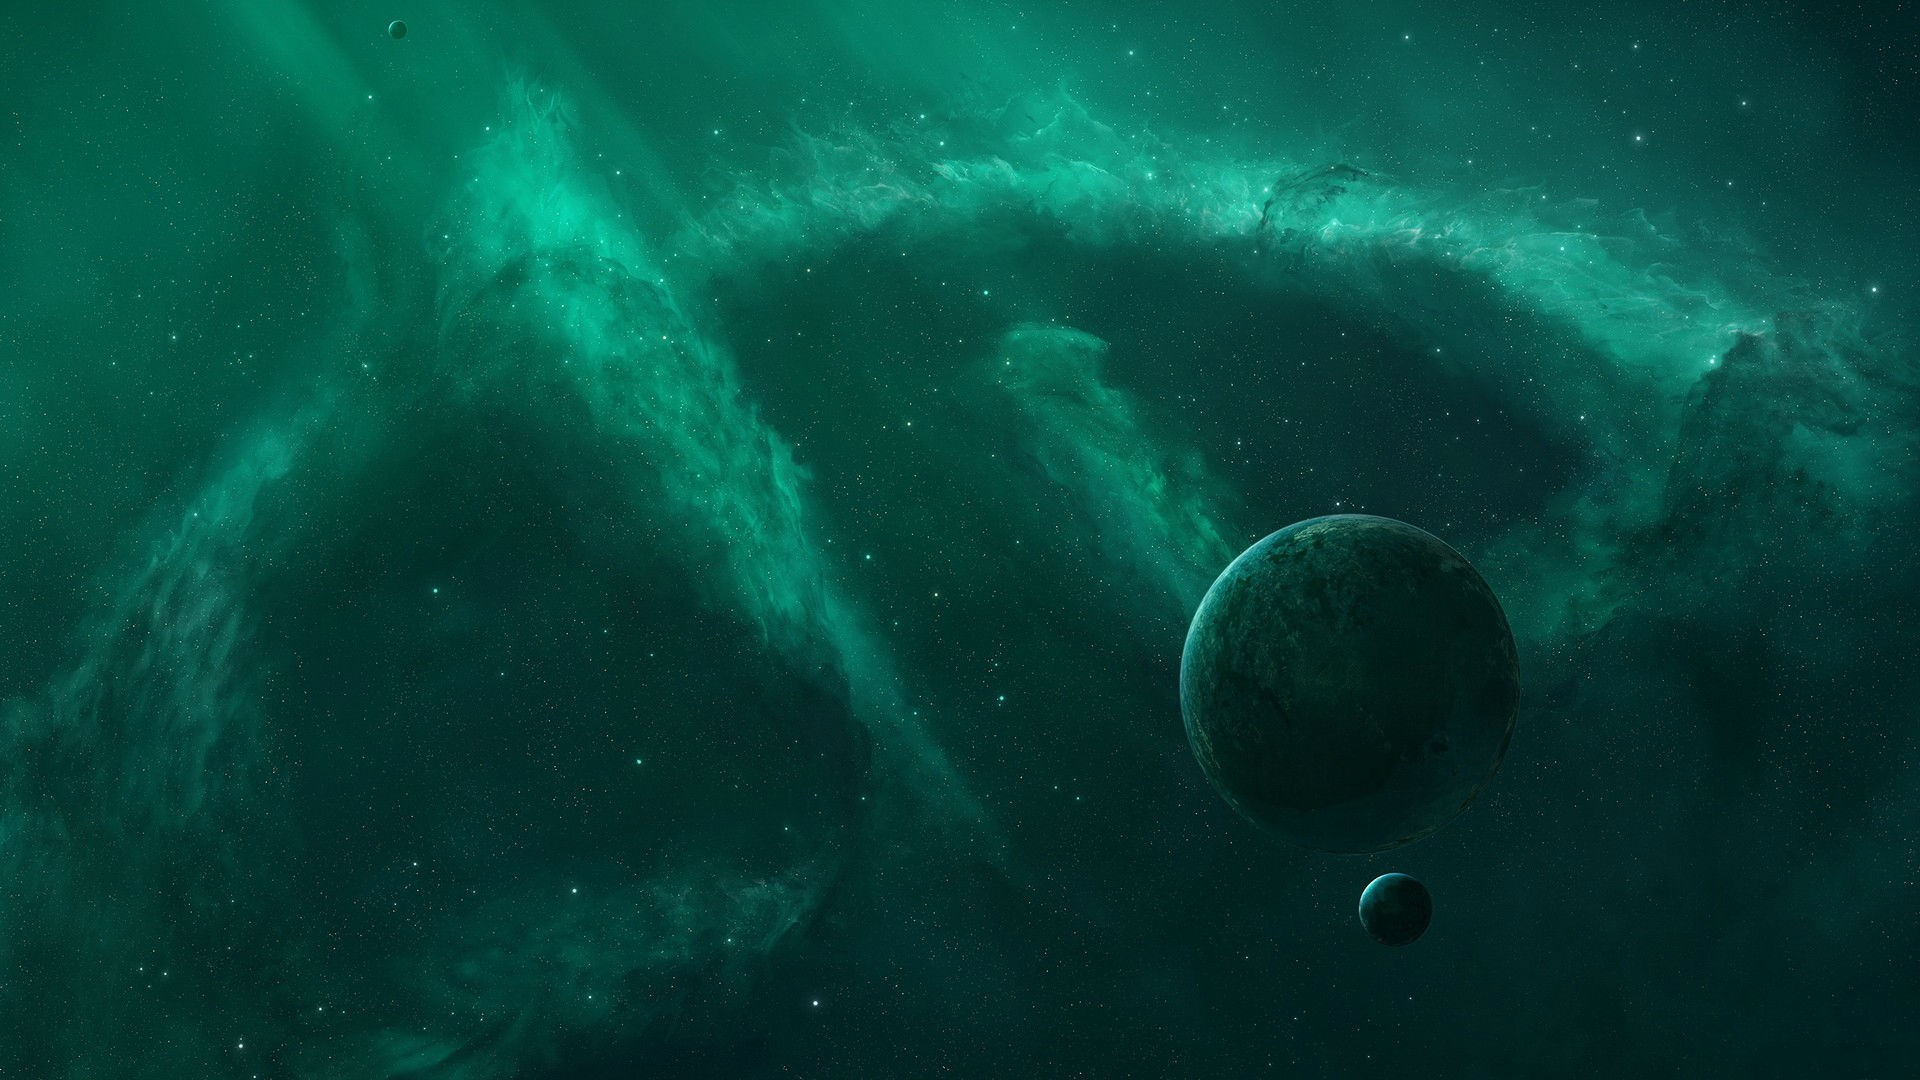 astronomy blue and green backgrounds - photo #14